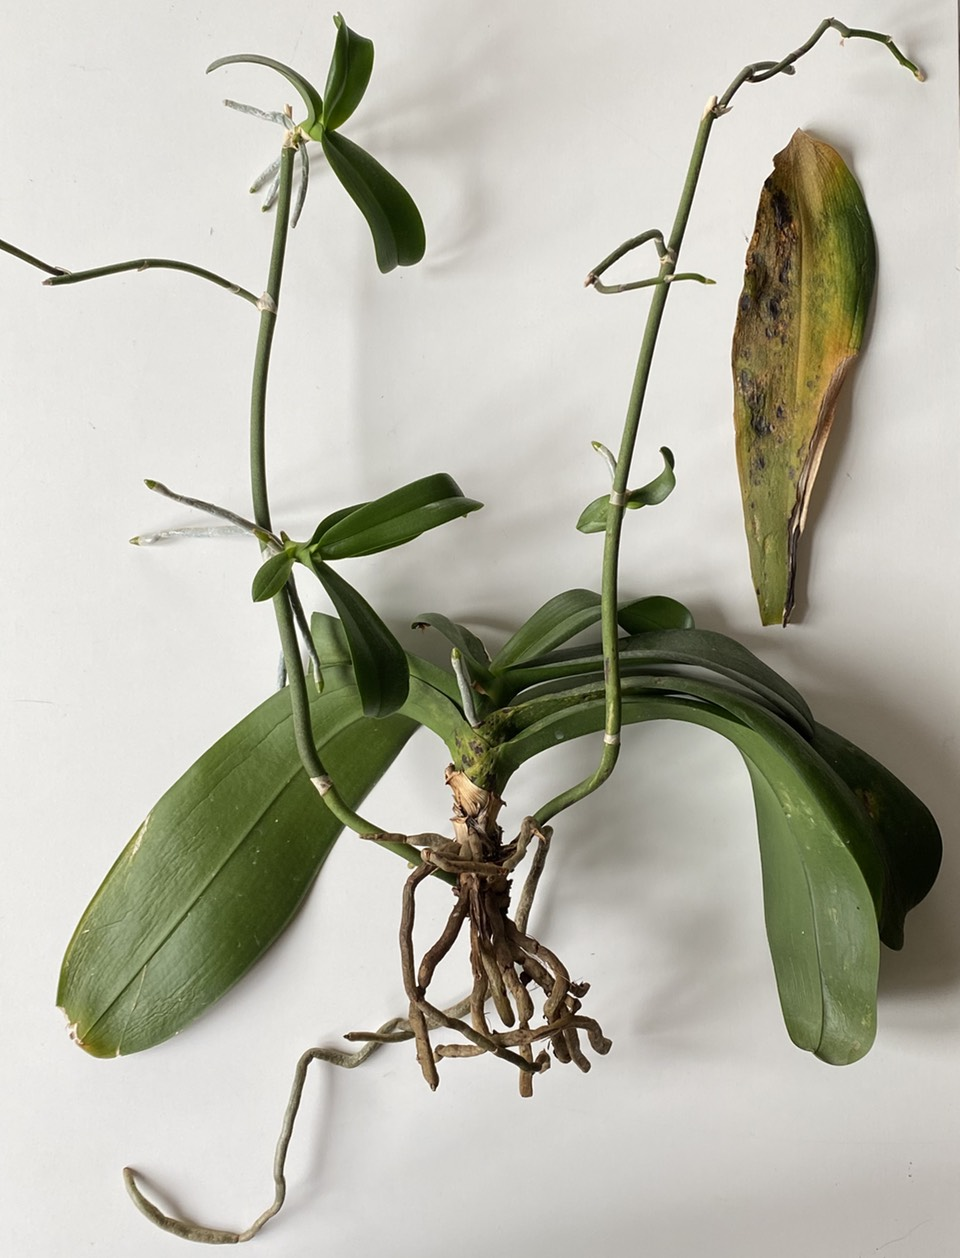 Revived Phalaenopsis orchid on its side and bare rooted with a naturally dropped dying leaf